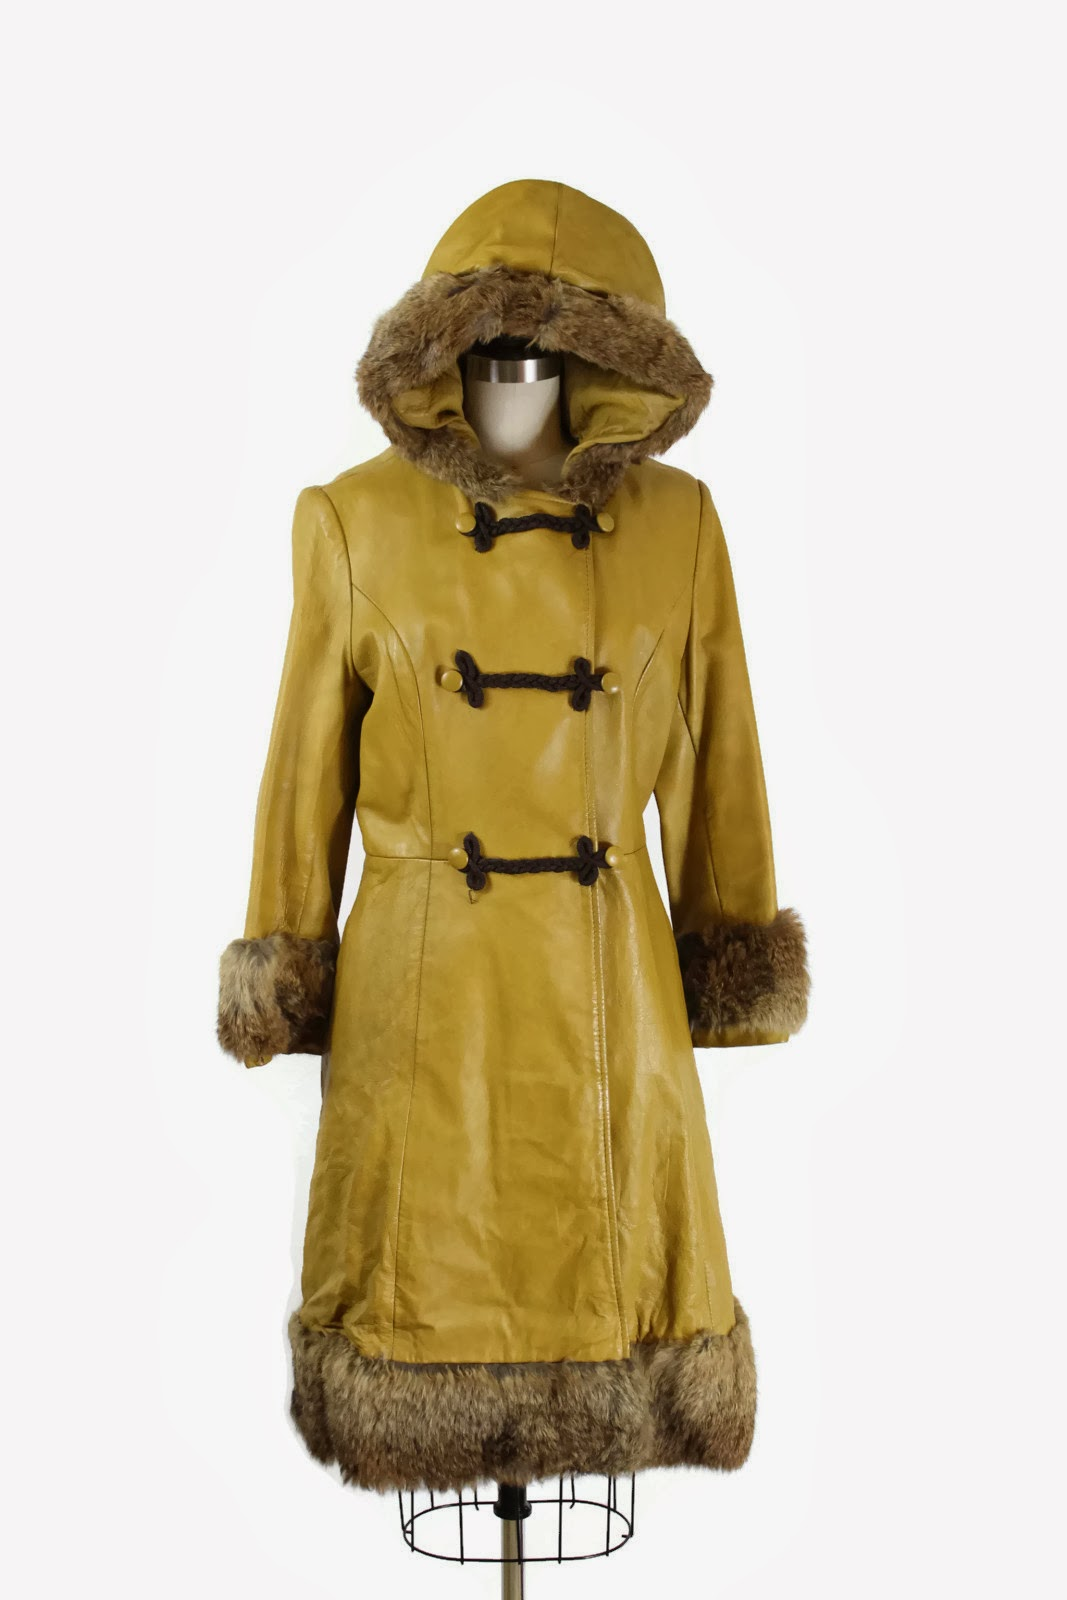 Leather Fur 1970s mustard yellow coat